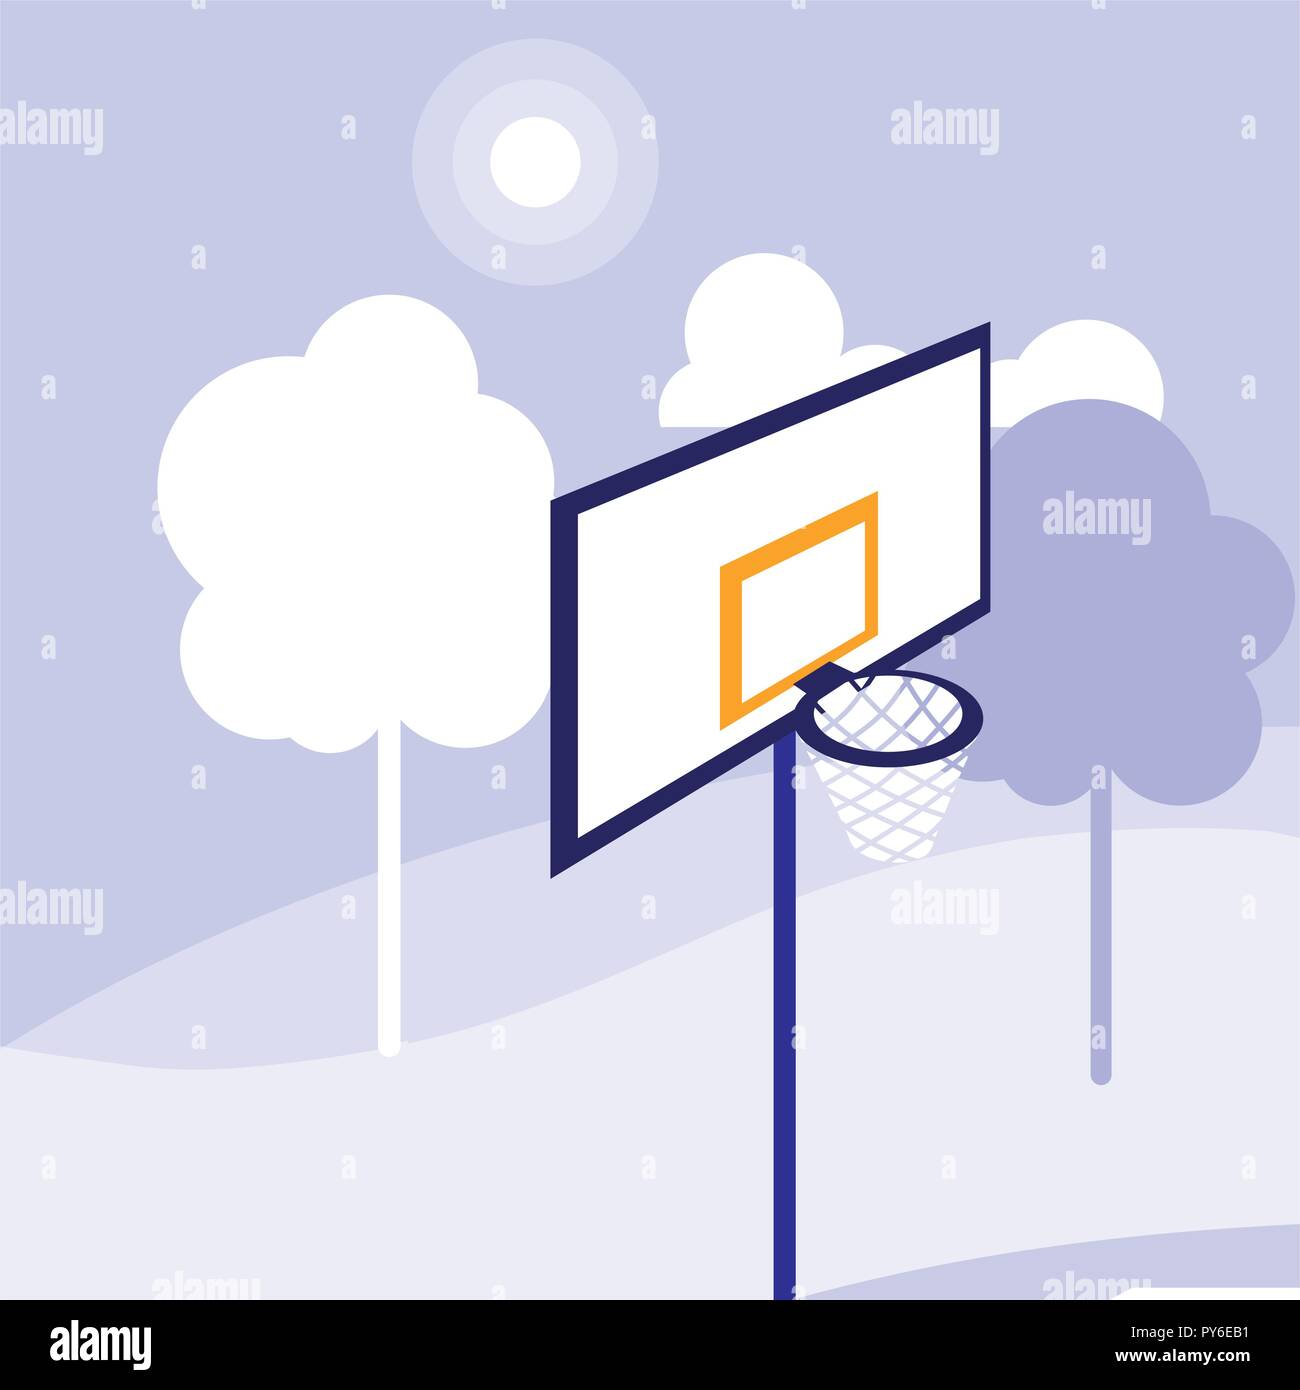 Basketball Hoop Icon Over Trees And Purple Background Vector Diagram Illustration